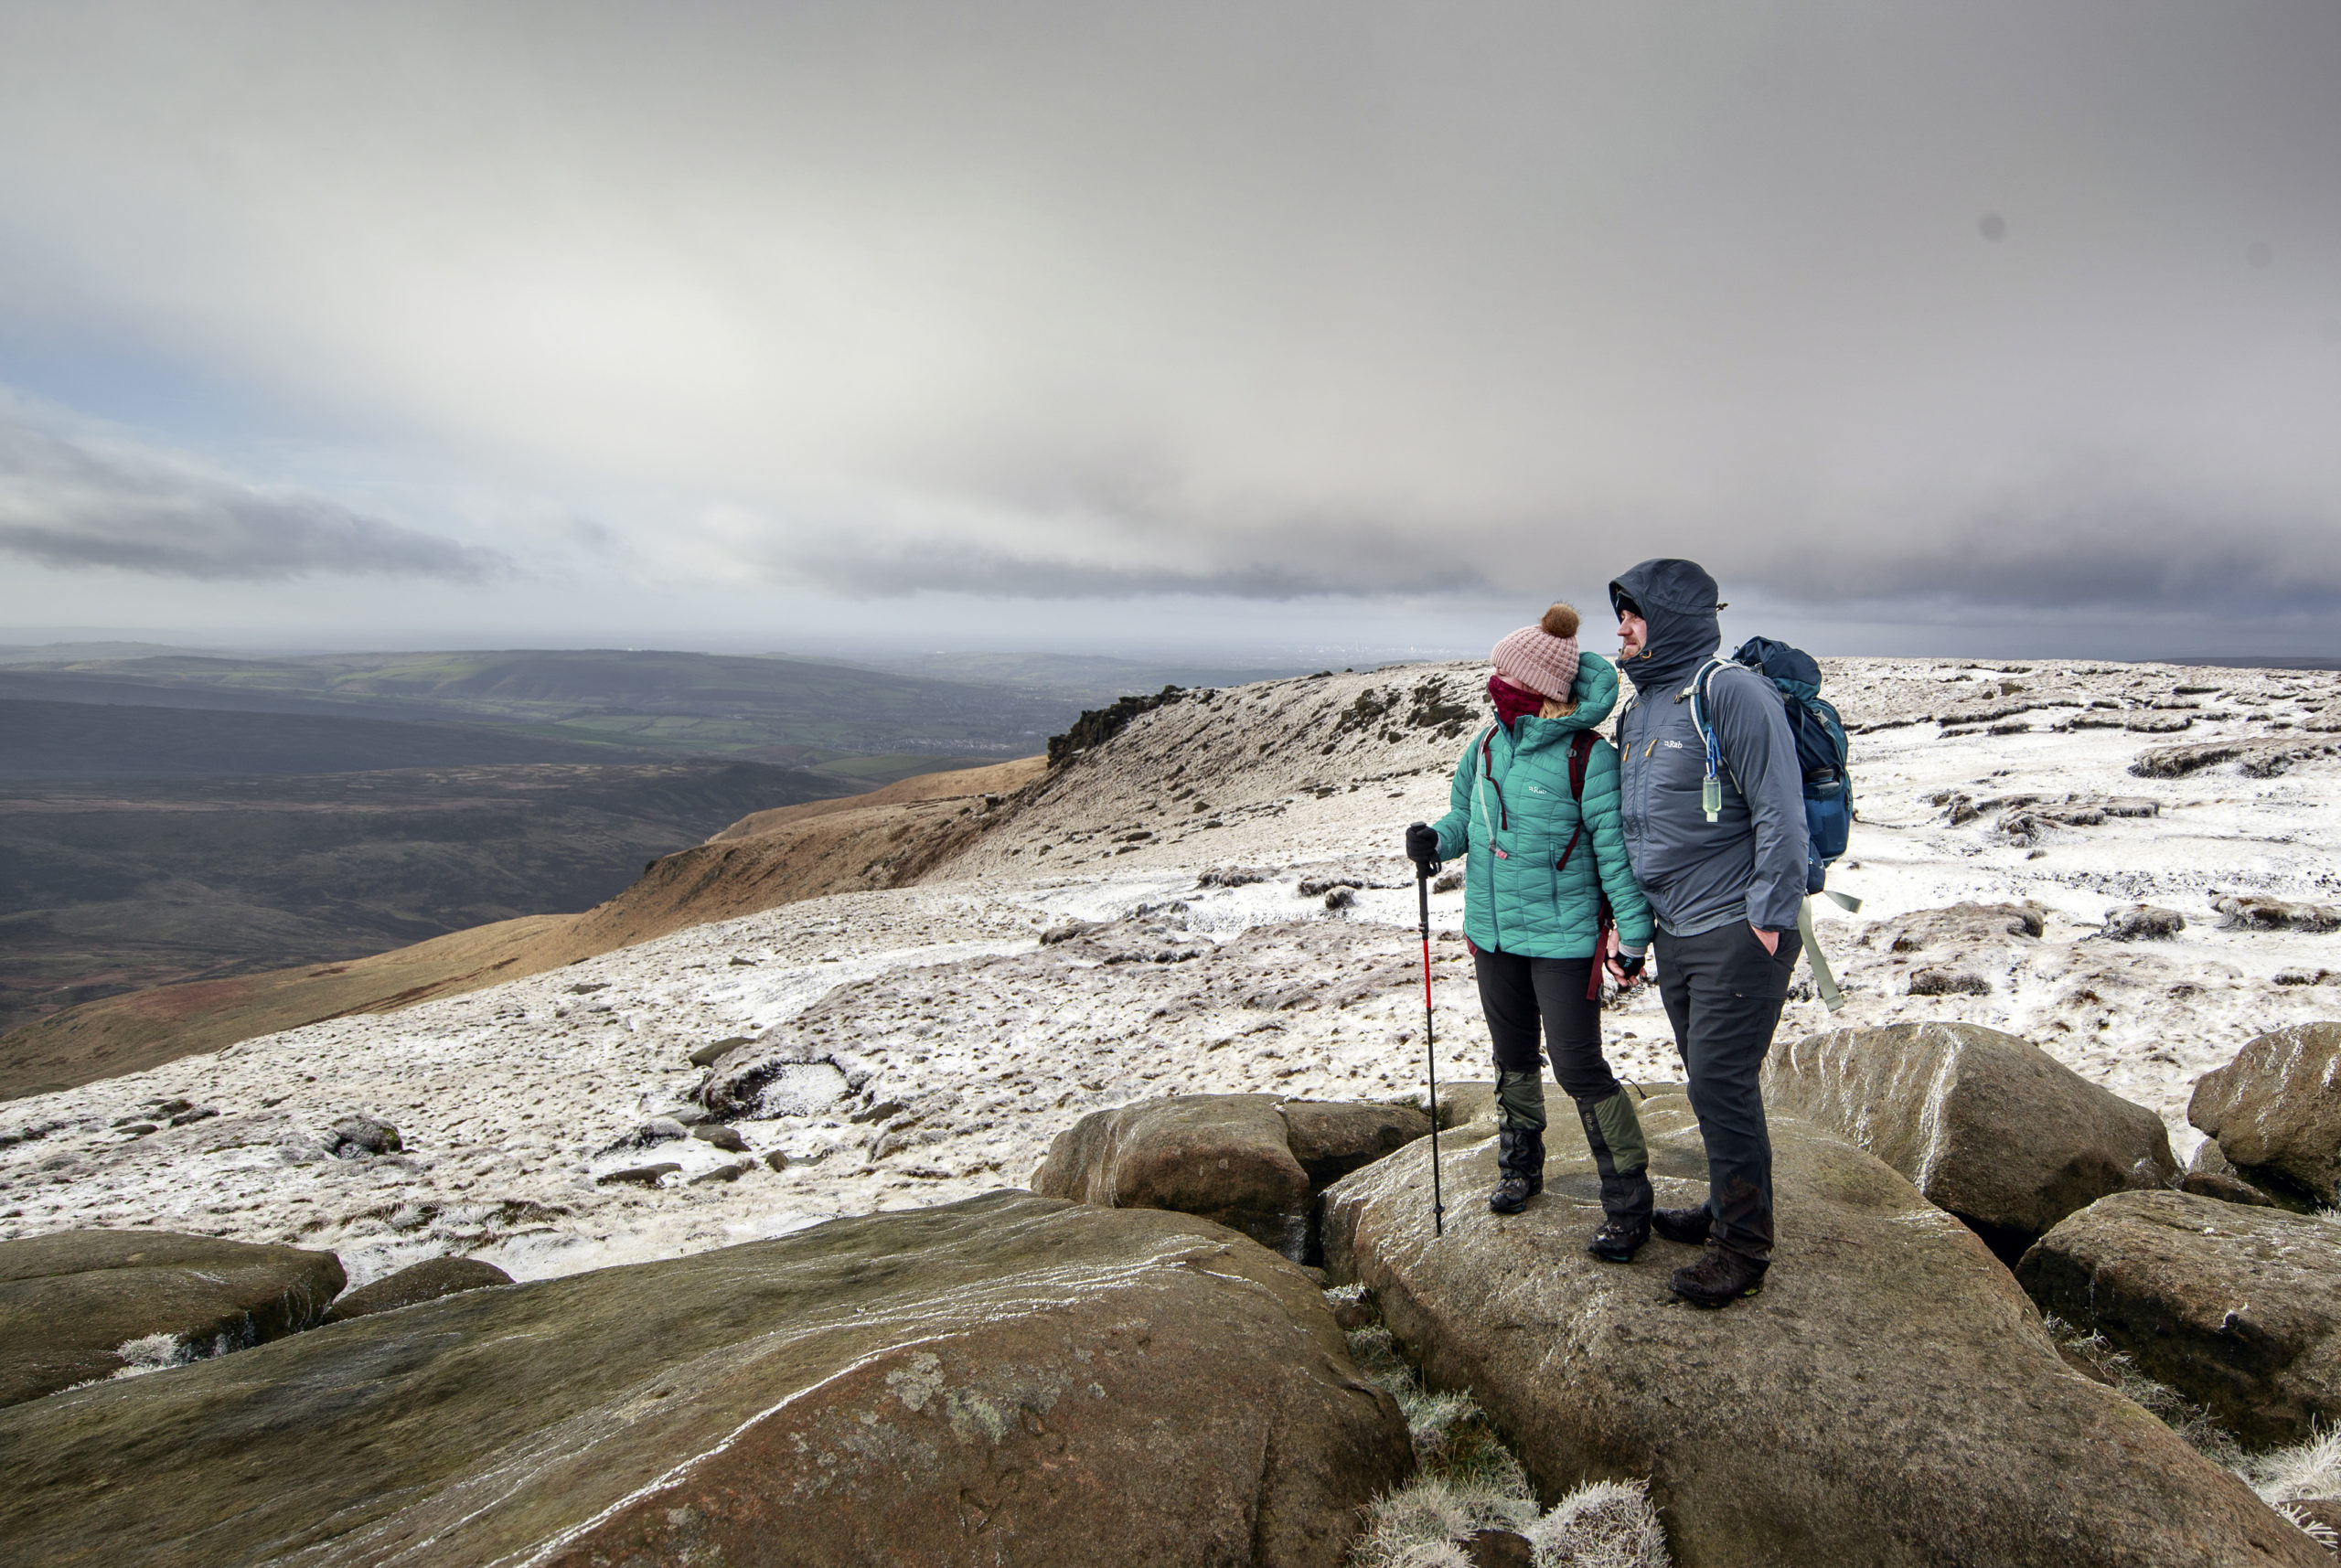 Hikers in snowy conditions